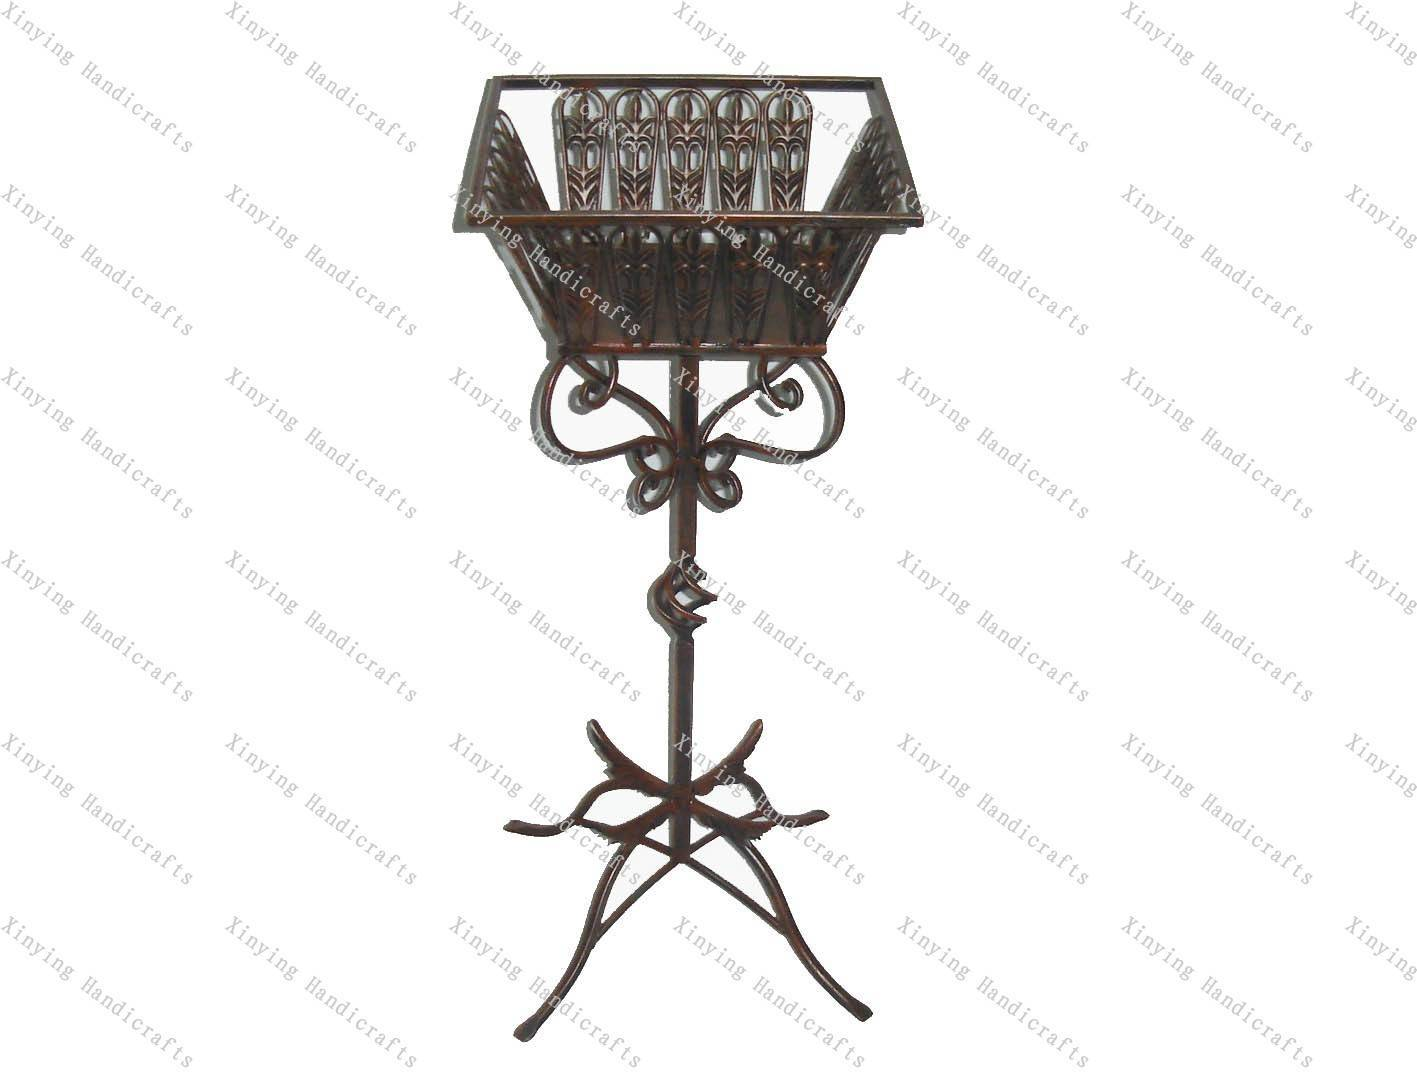 Wrought Iron Flower Stand For Garden Decorations Anxi Xinying